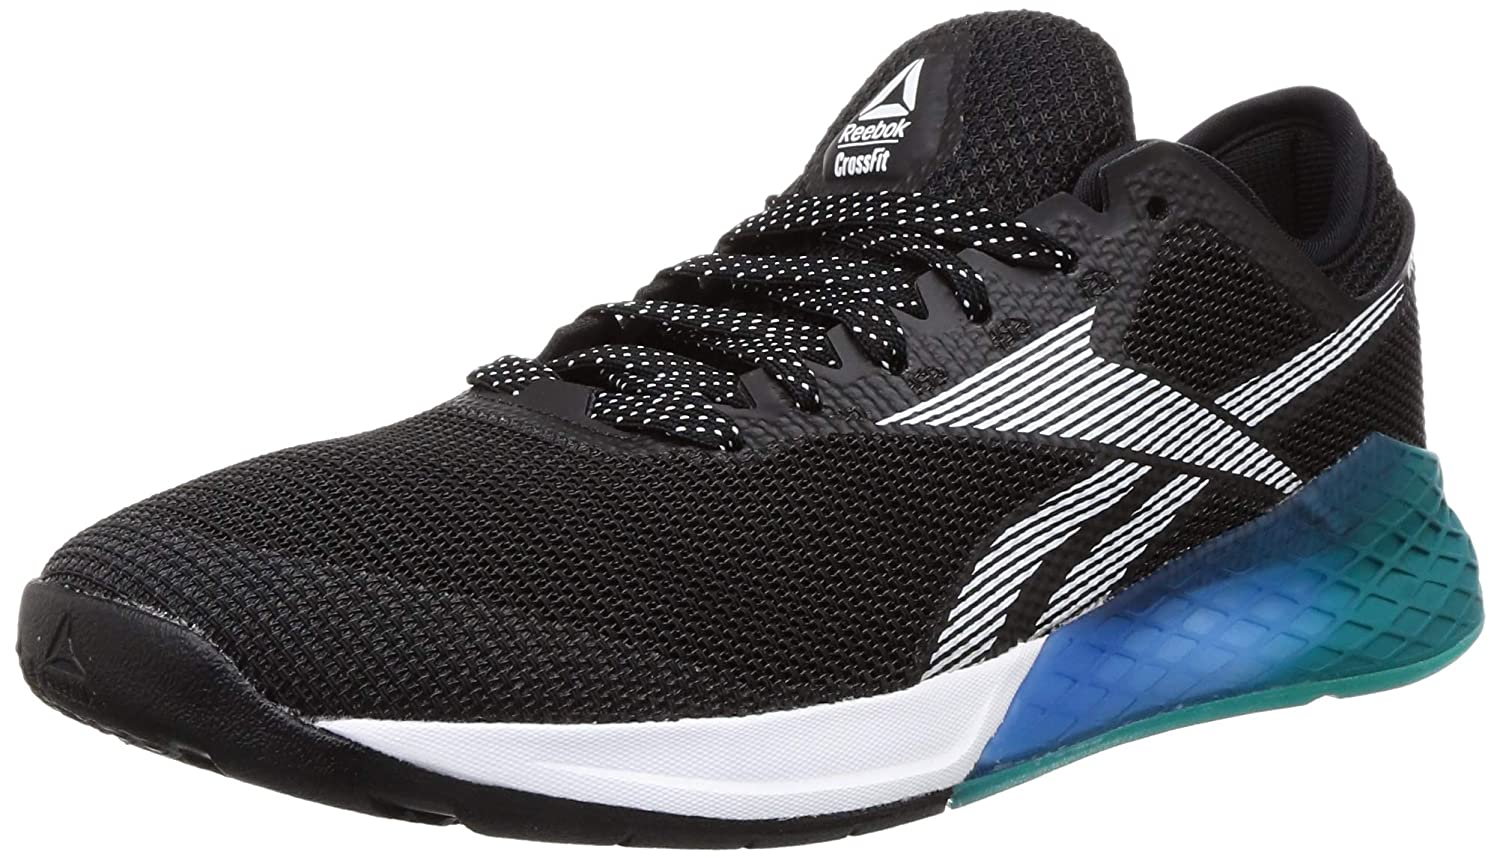 Reebok Men's Nano 9 Training Shoes